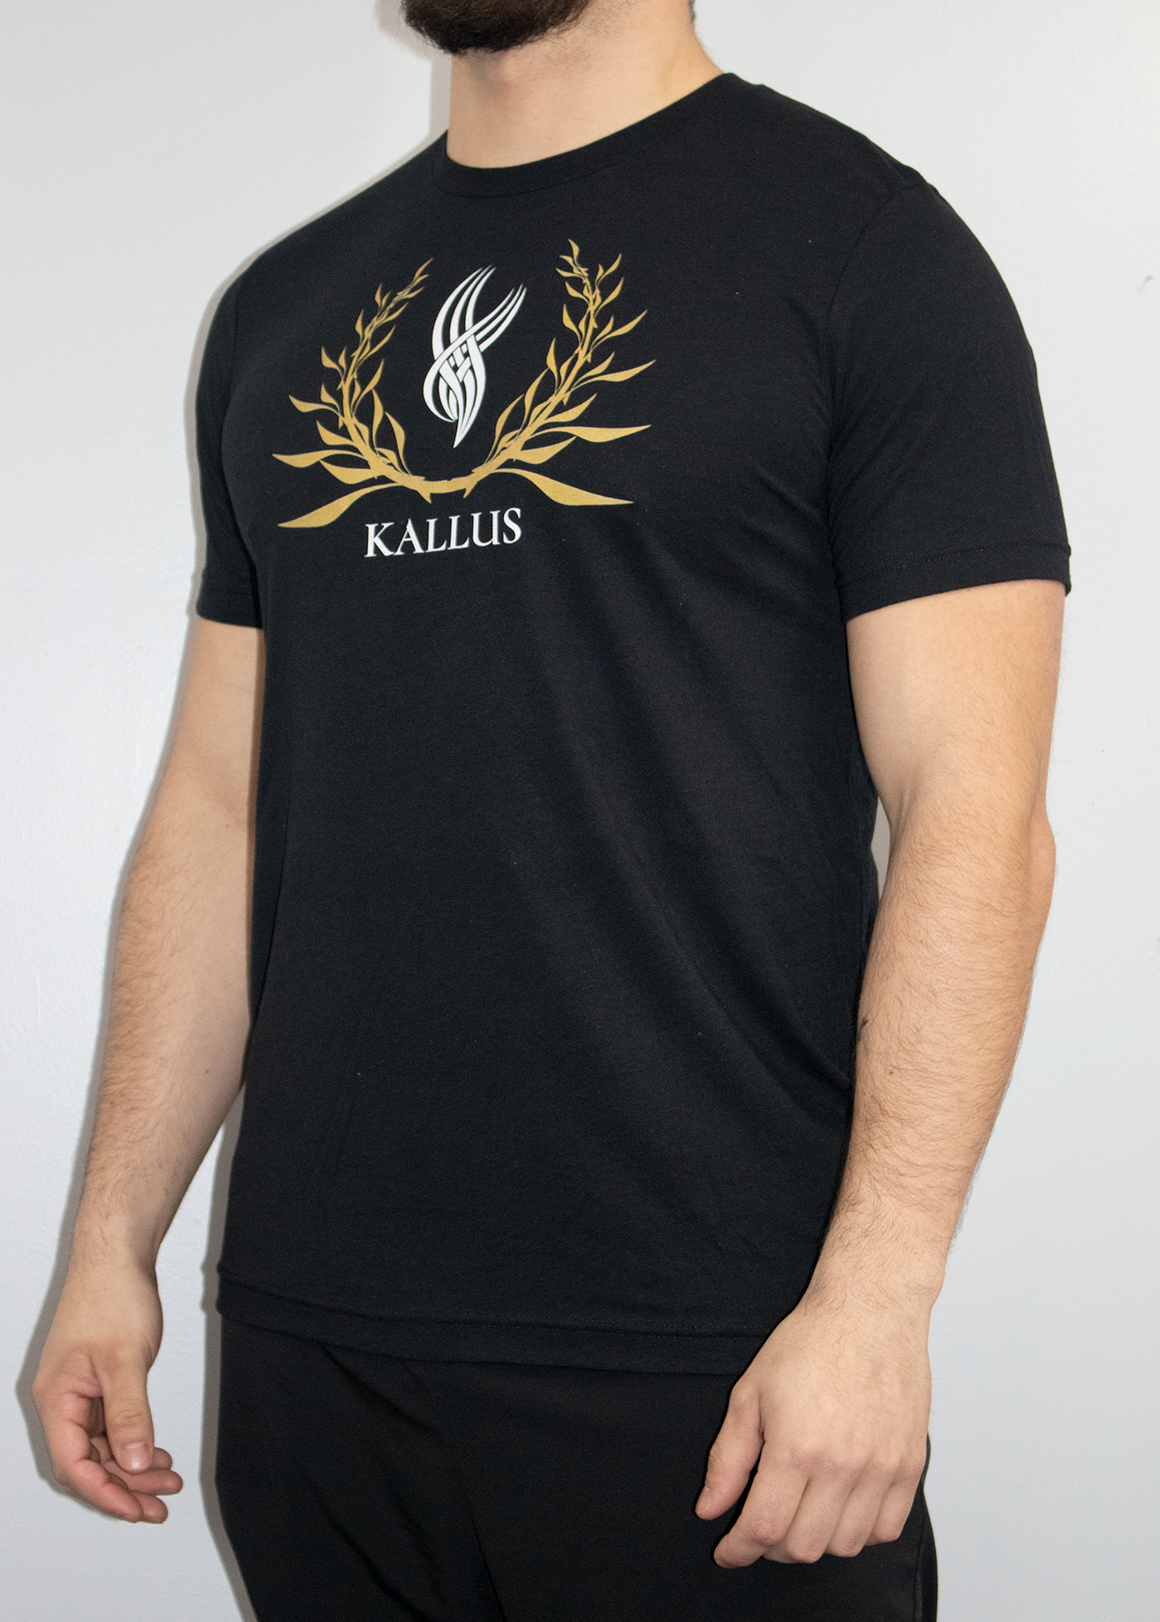 Laurel Wreath TriTech Tee - Black